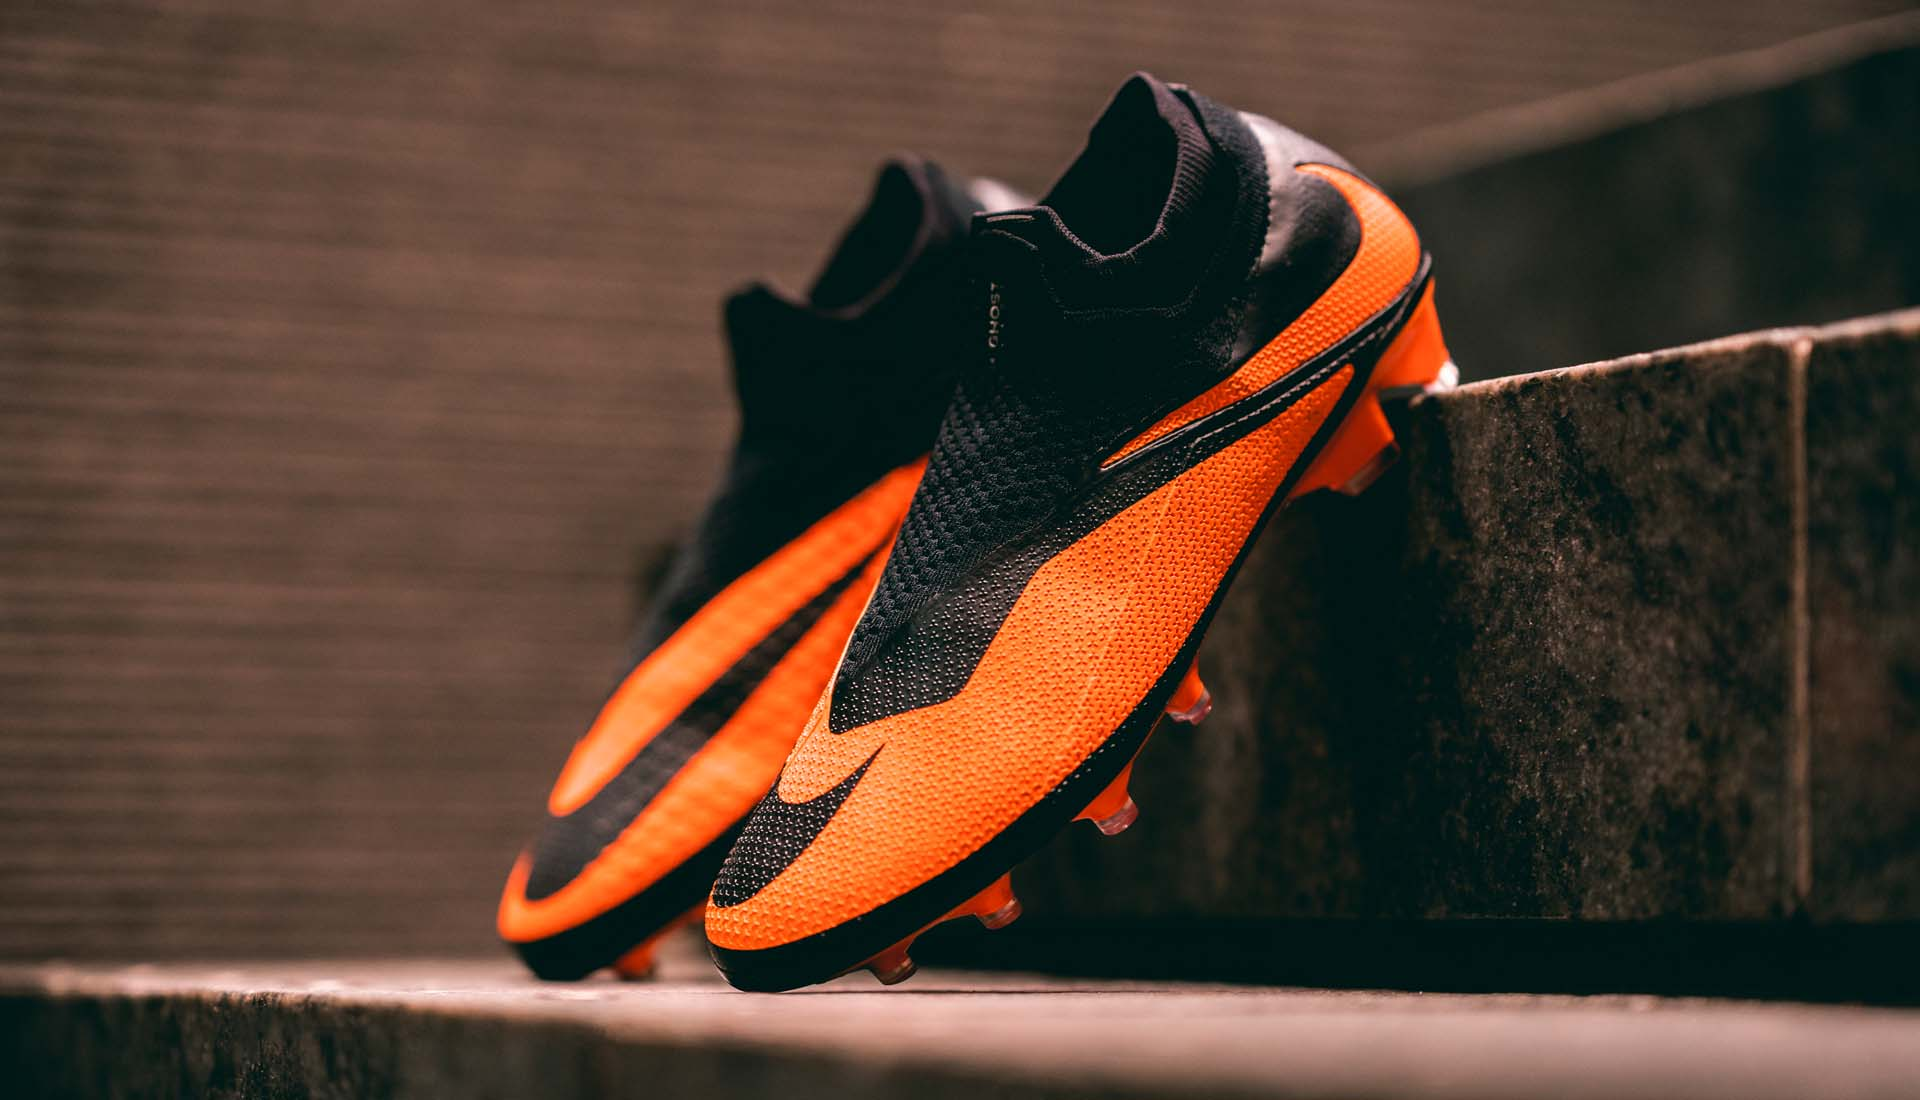 Ligeramente Energizar Parlamento  Our Top Boots From Pro:Direct's Black Friday 2020 Deals - SoccerBible